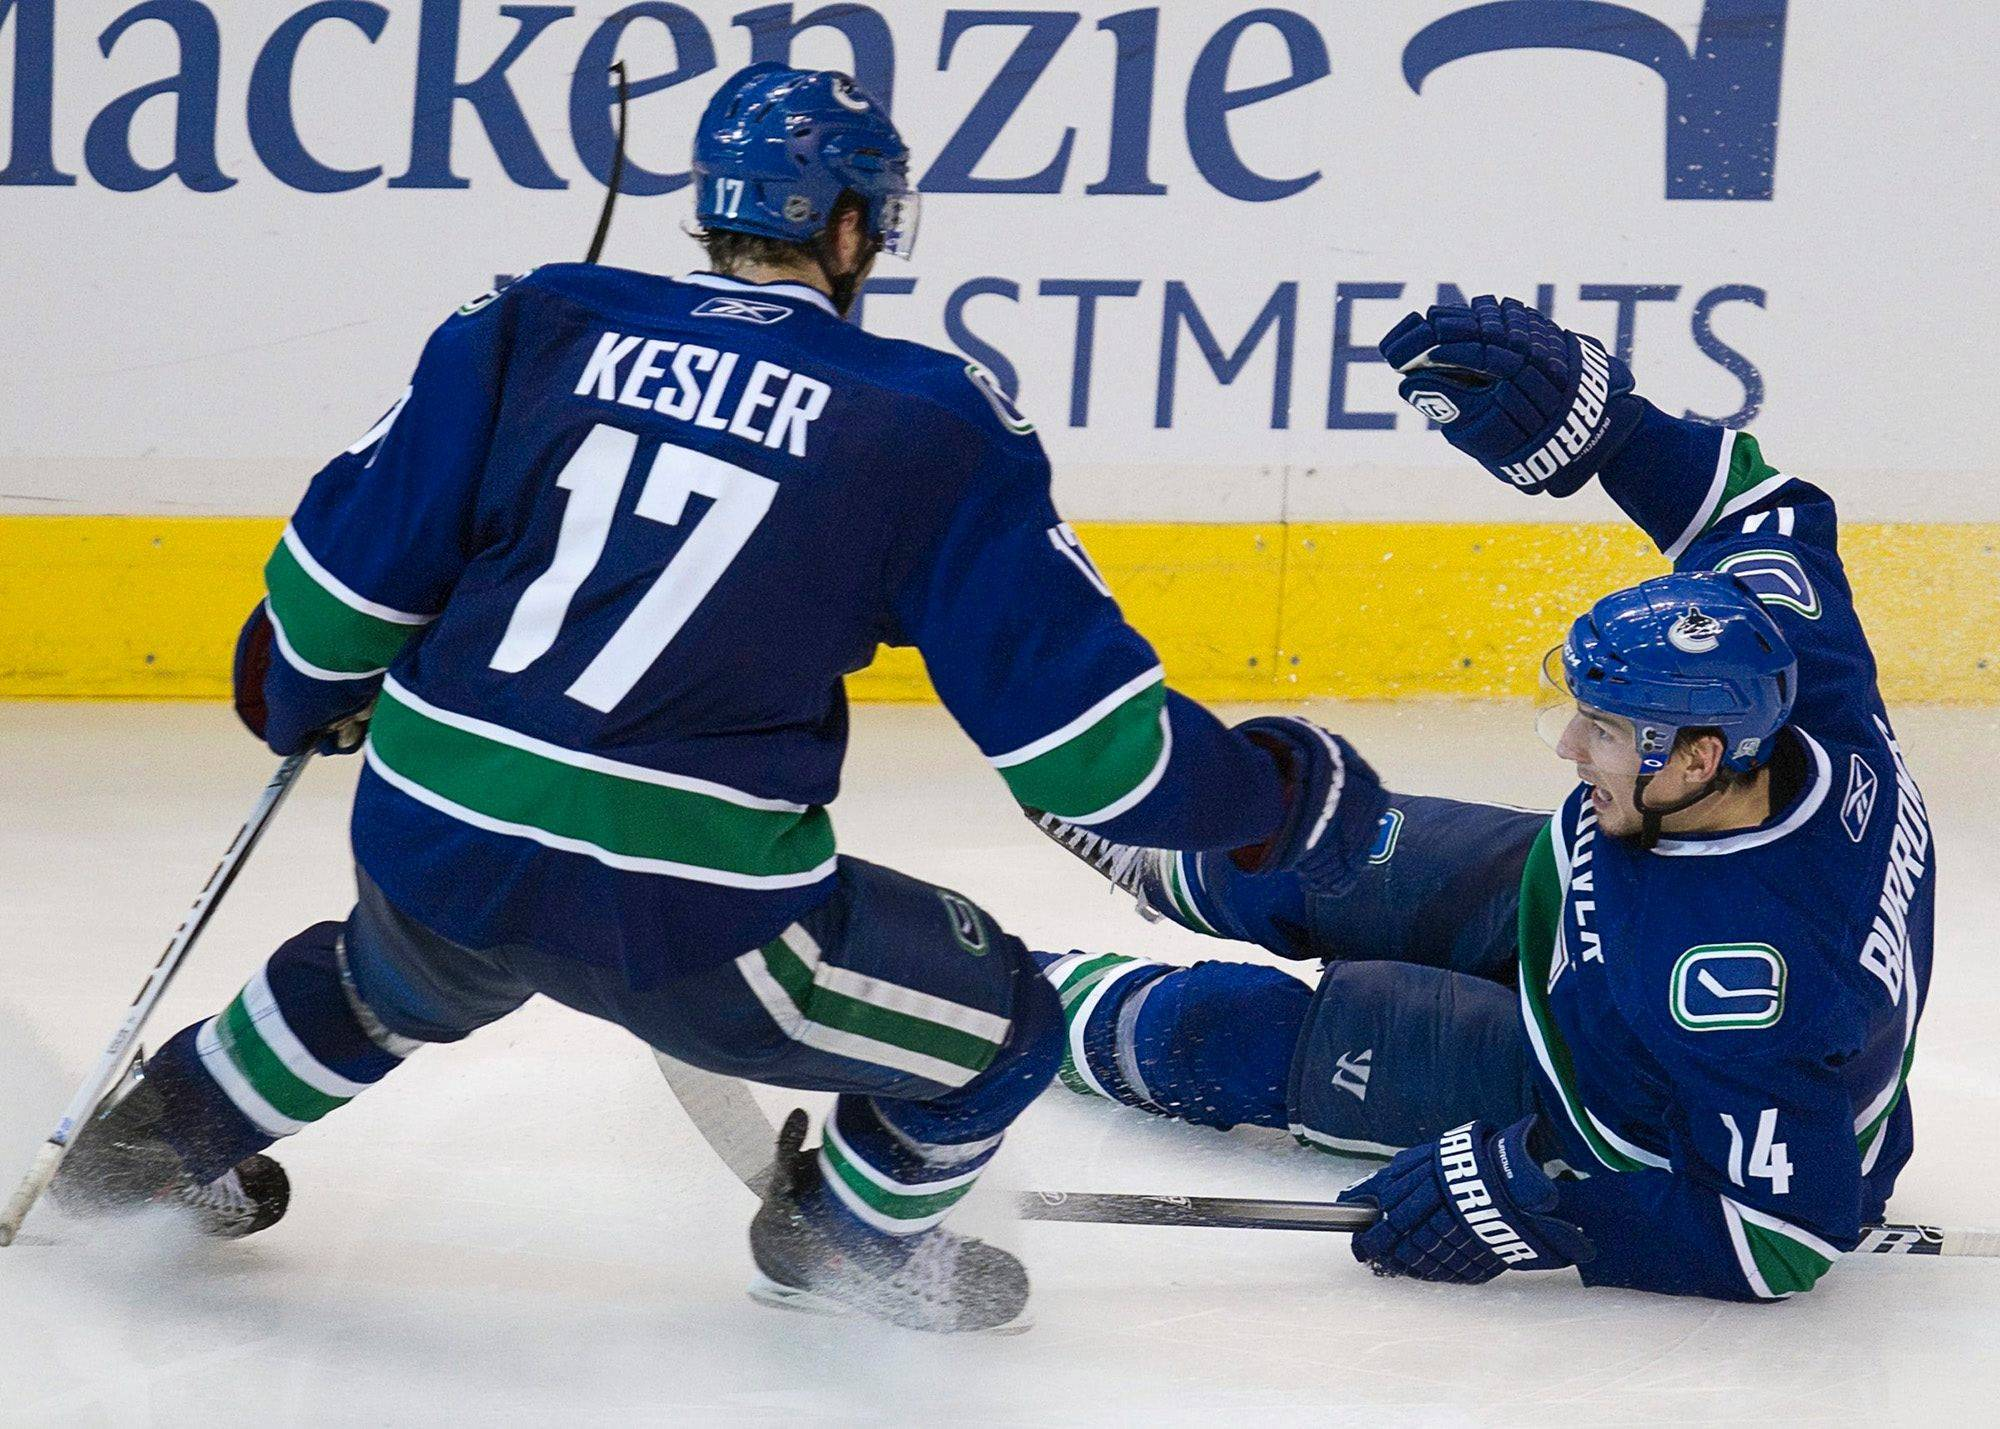 The Canucks' Alex Burrows, right, celebrates his game-winning overtime goal with Ryan Kesler on Tuesday in Game 7 of the quarterfinal series against the Blackhawks.